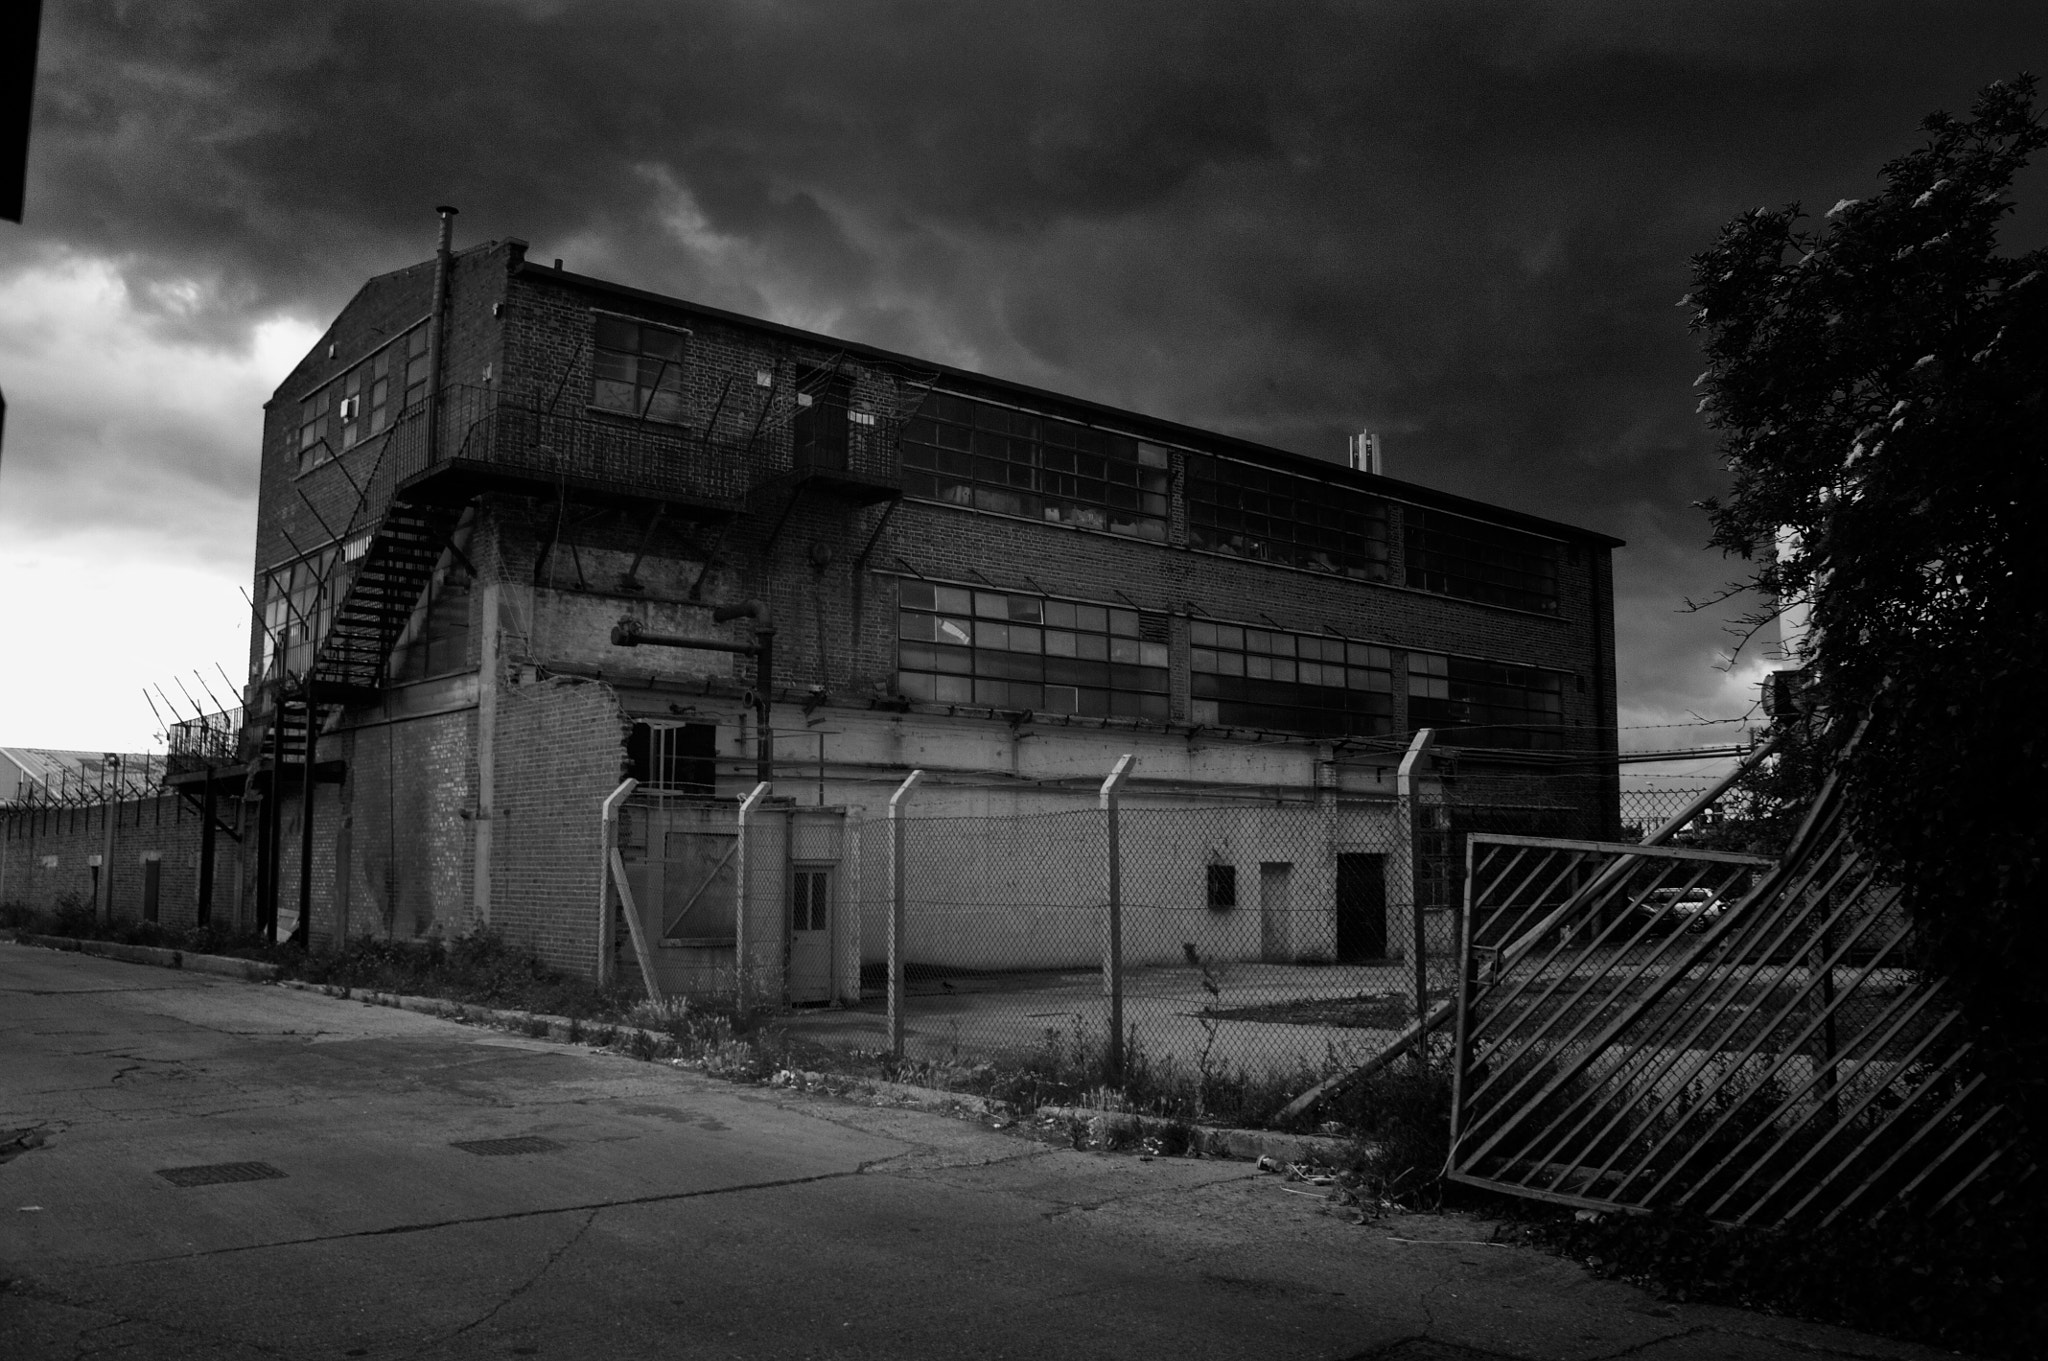 Photograph BC Industrious 2 by Brad Clark on 500px